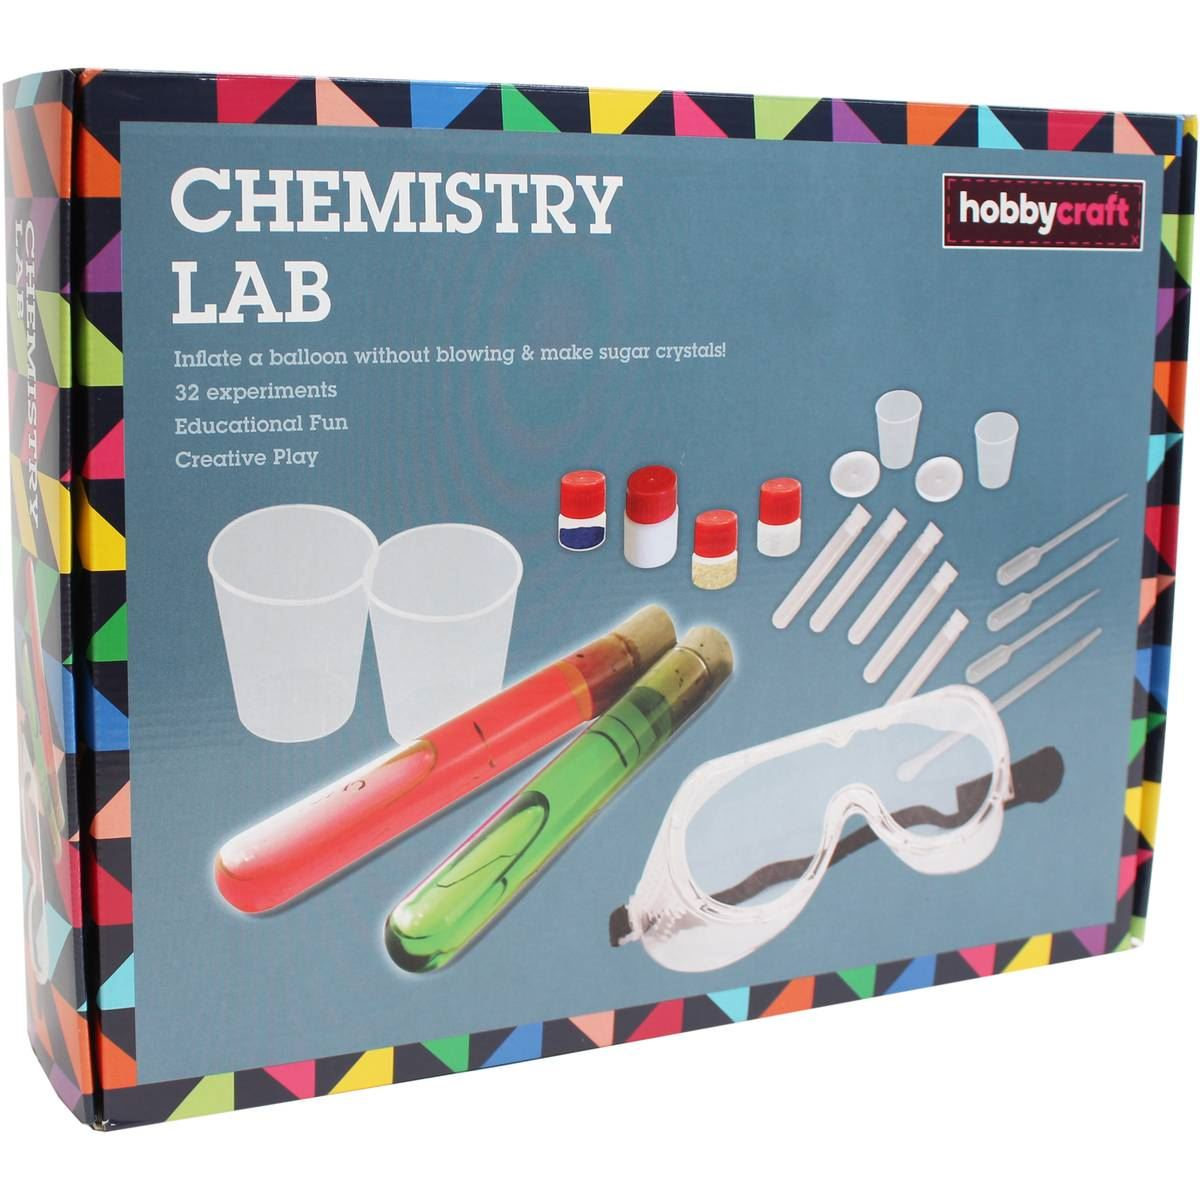 Hobbycraft Chemistry Lab Kit Educational Science Toy Childrens Activity 8 Years